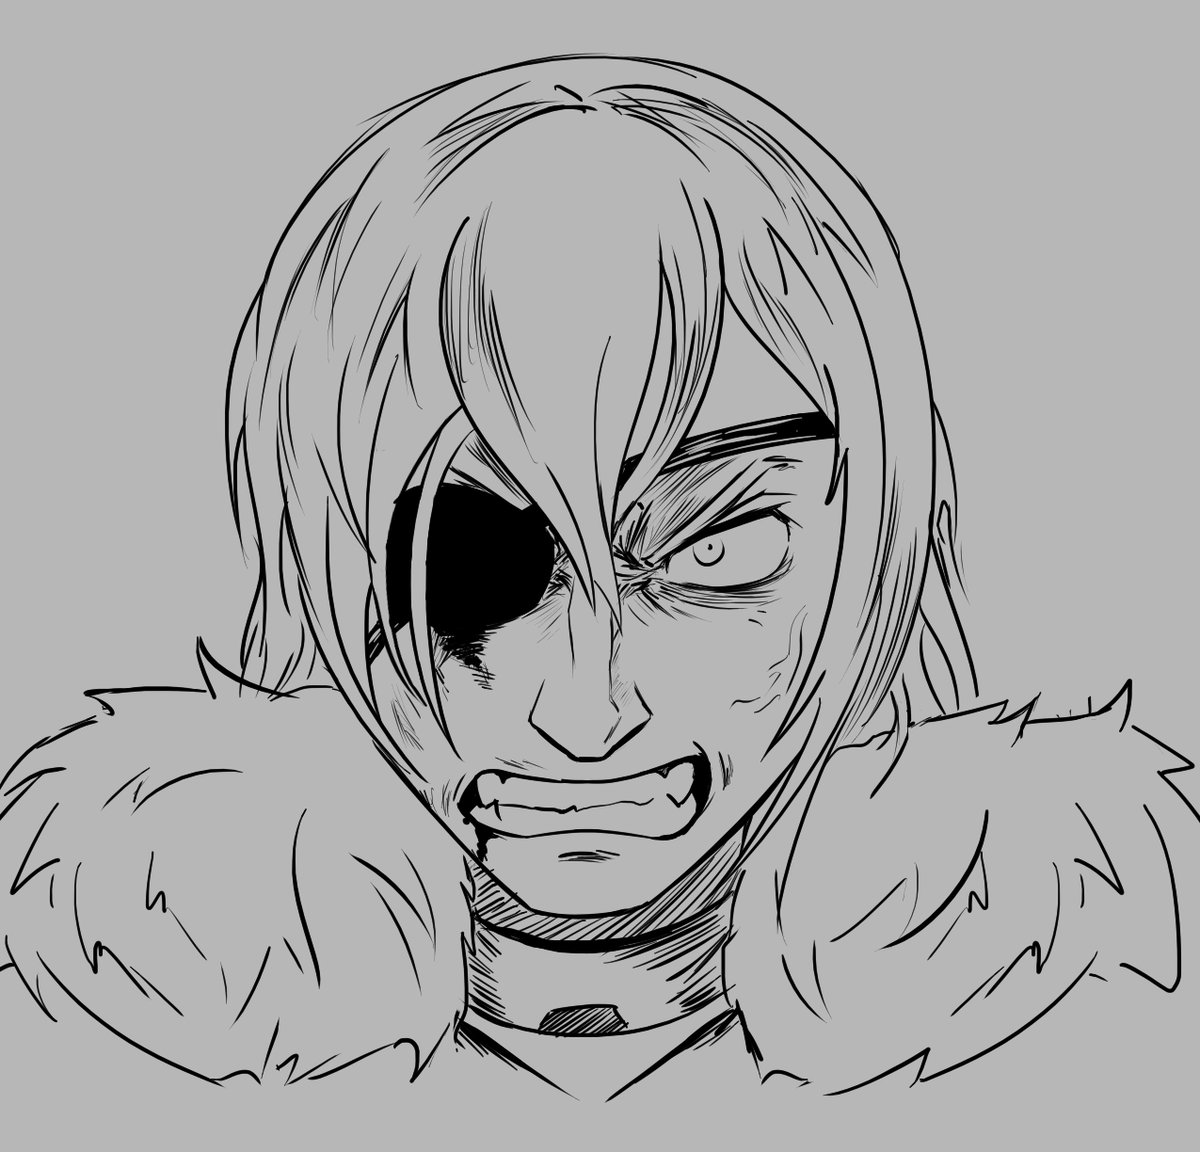 Testing out drawing angry emotions today and also tried a pen sketch, so I redrew a drawing I did of angry boi Dmitri.  Think it's worked out well. #fe3h #fireemblem3houses #BlueLions<br>http://pic.twitter.com/HCwzvWEYSD